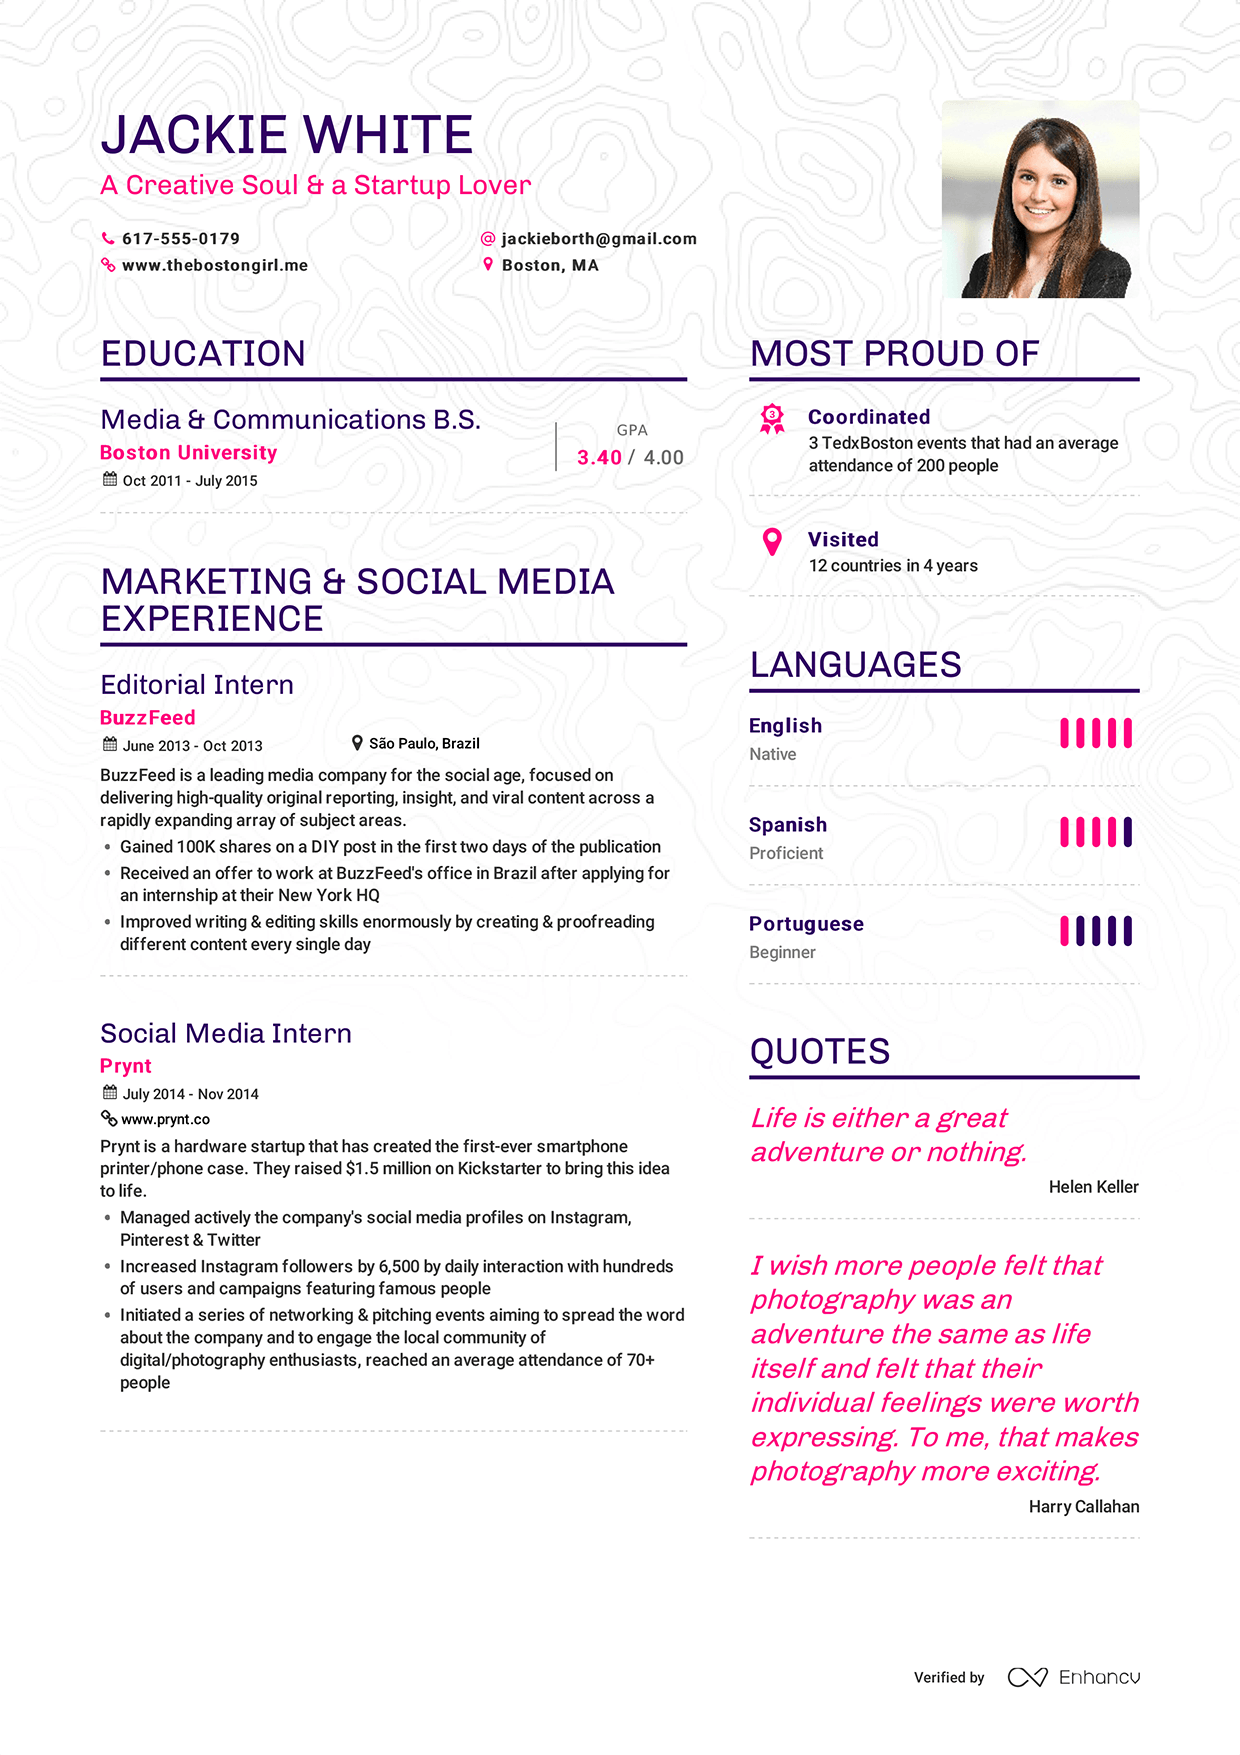 Resume Example Of Resume And Images examples of resumes by enhancv jackie white resume page 1